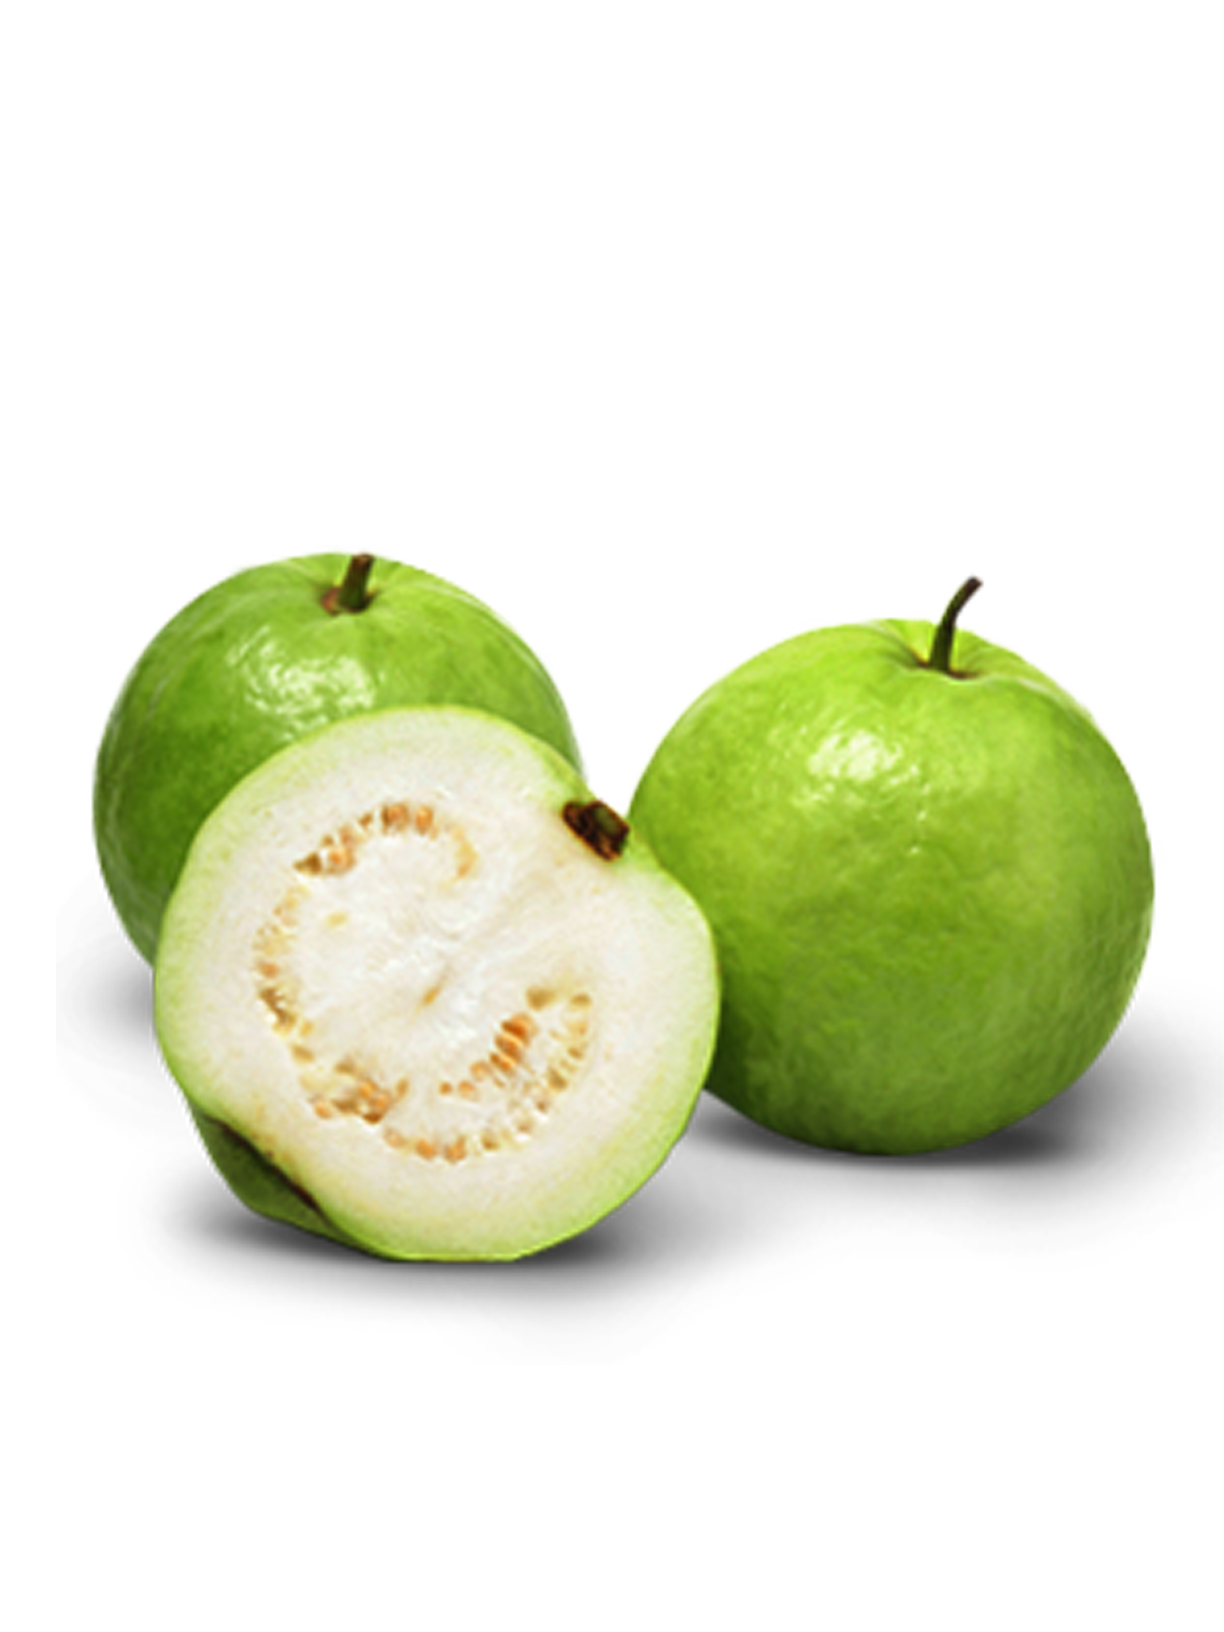 Guava - Guava oh so fresh. Some call it guayaba, others know it as bayabas!Pair it with your favorite fish like bangus, for a tasty sinigang sa bayabas.